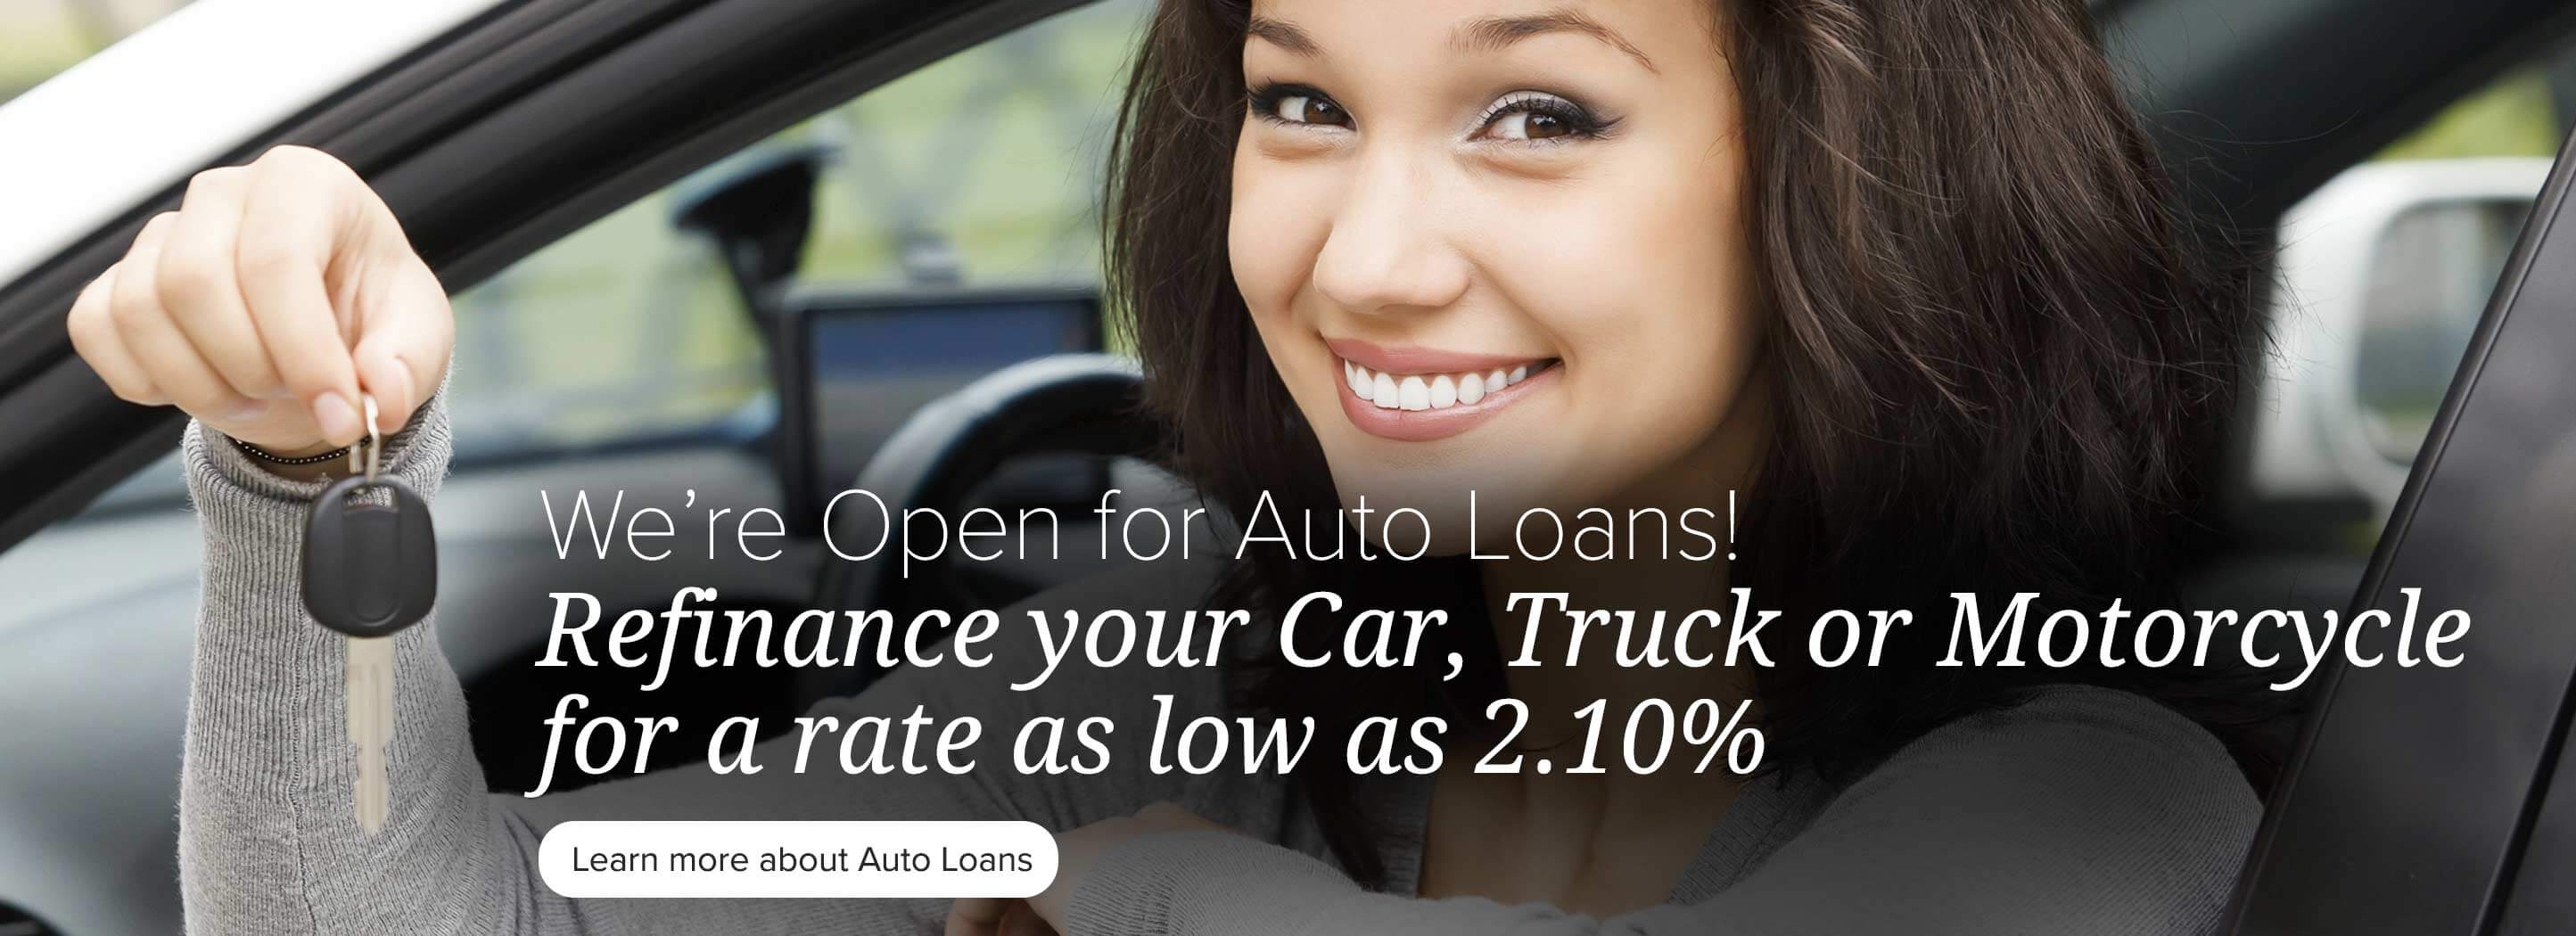 We're Open for Auto Loans! Refinance your car, truck or motorcycle for a rate as low as 2.10% Learn more about auto loans